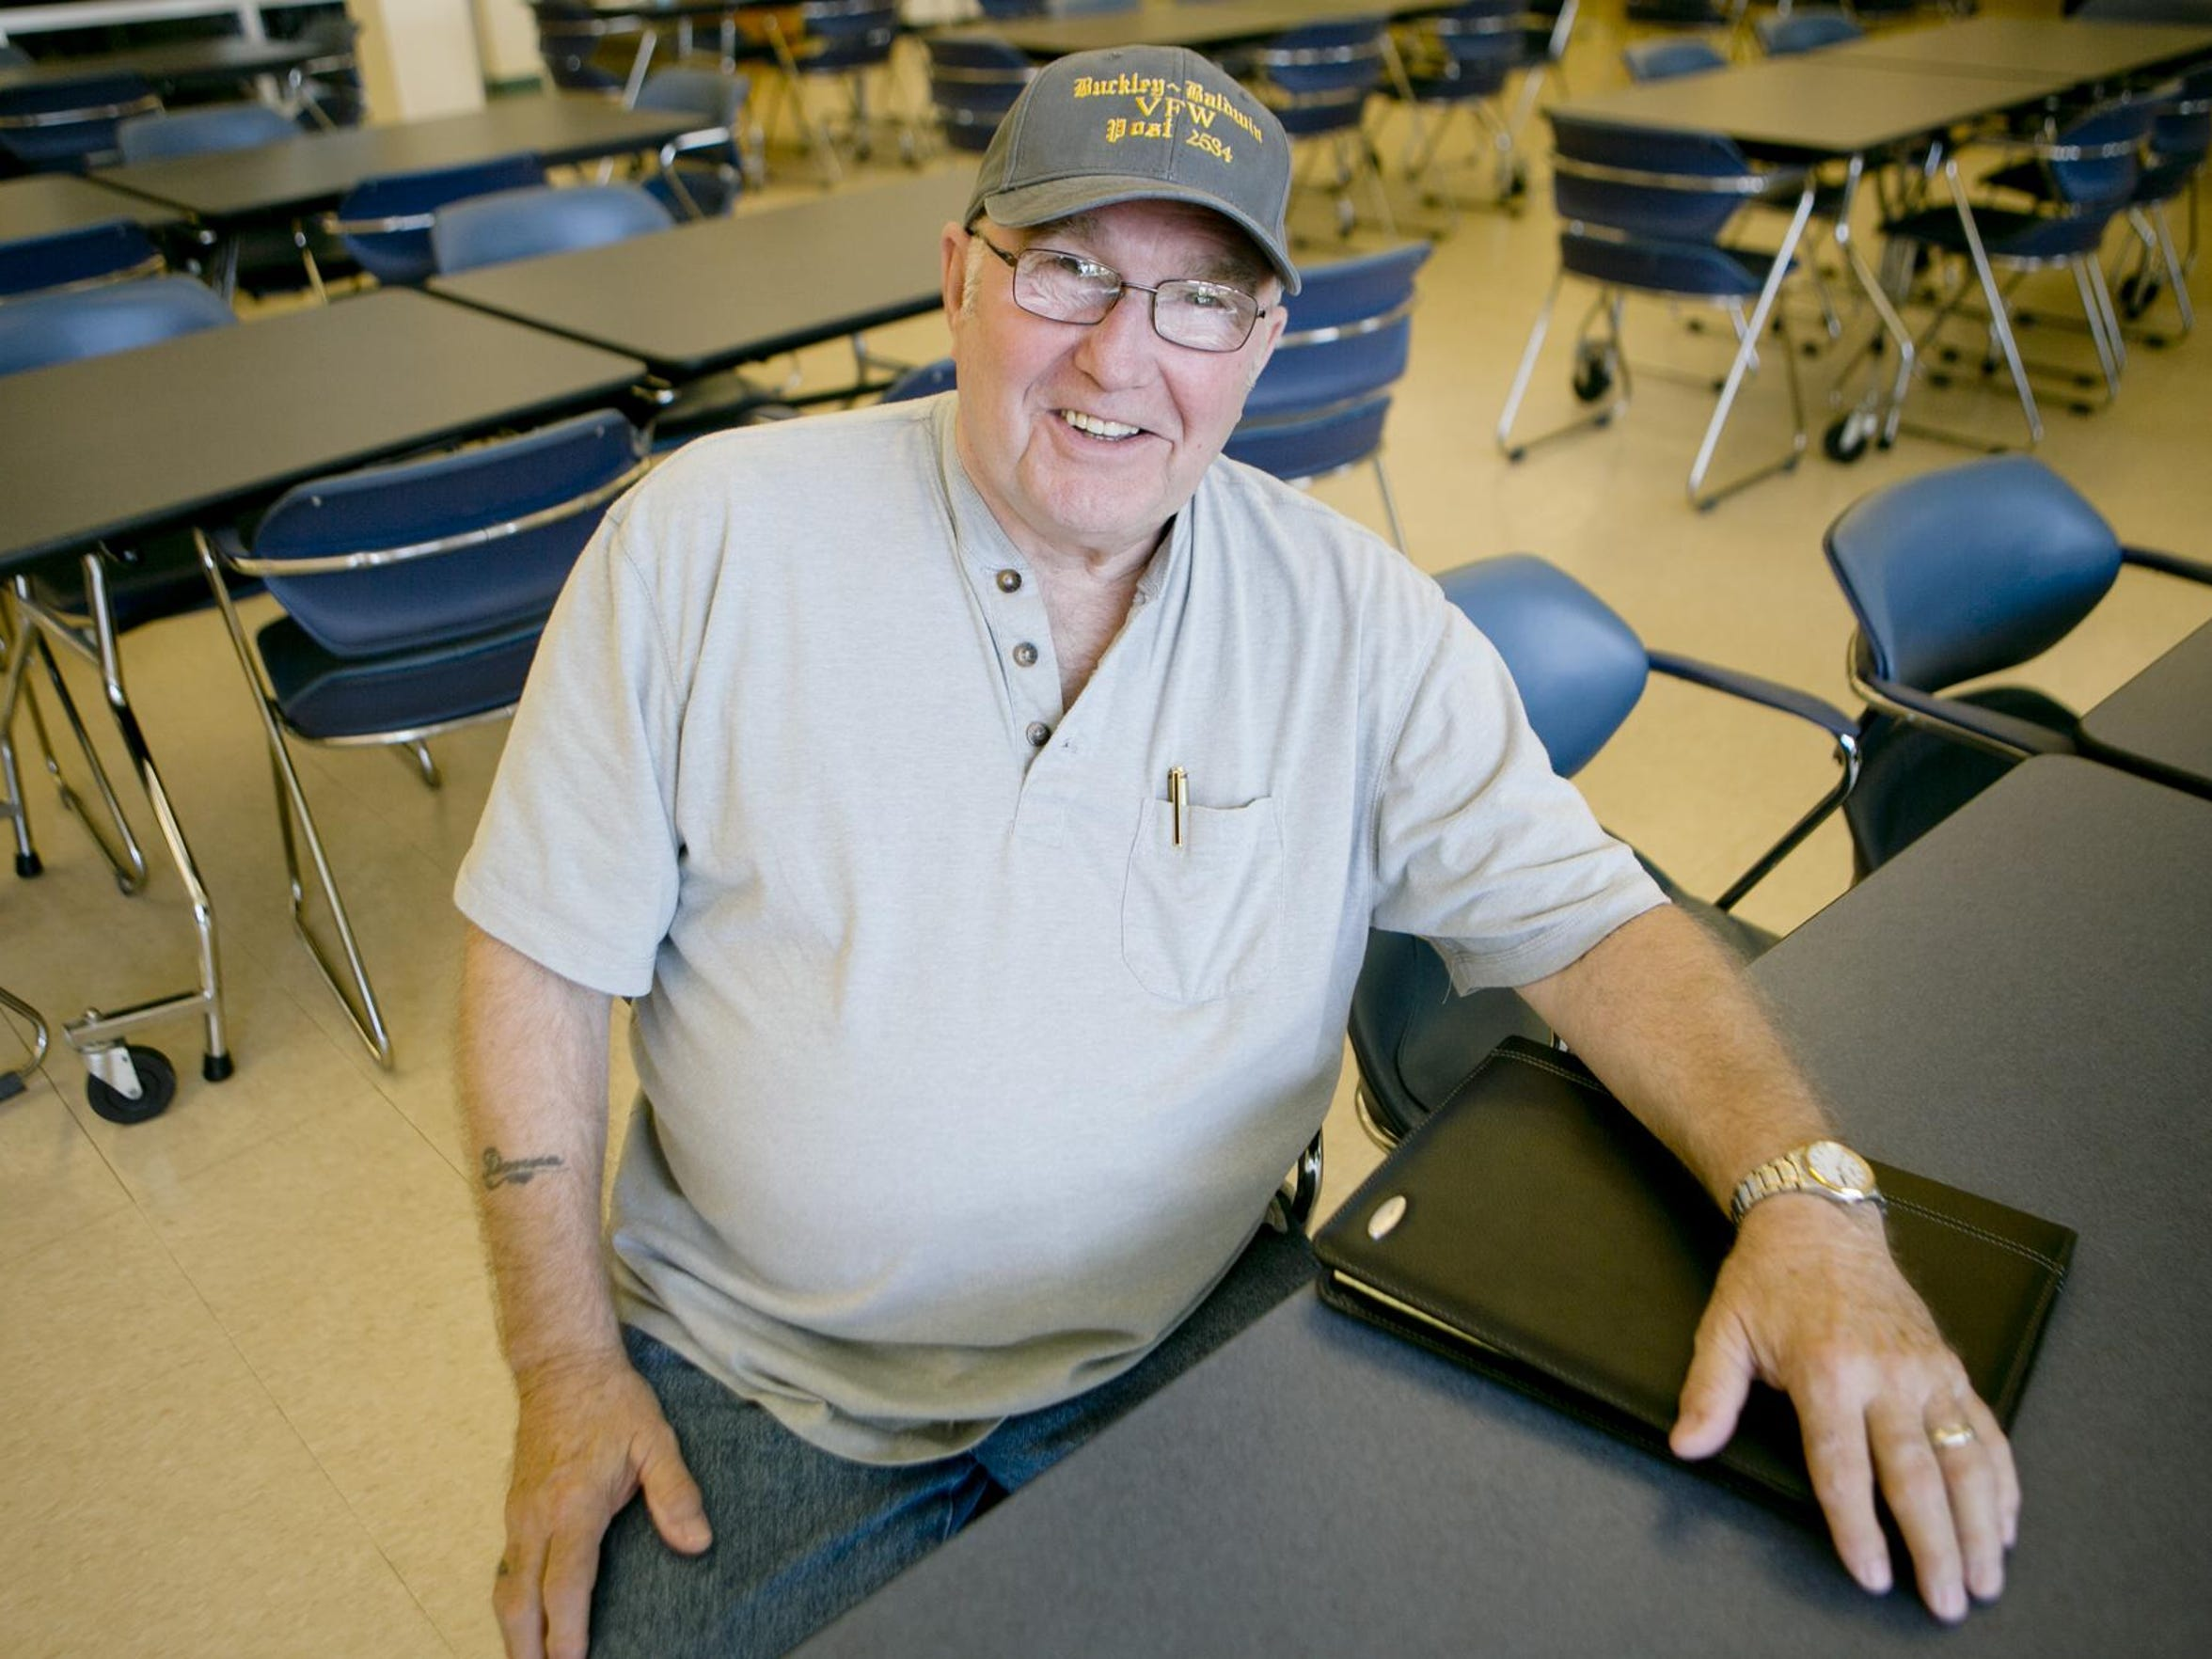 Bill Haack of Wisconsin Rapids poses at the Lowell Center in Wisconsin Rapids, Tuesday, July 21, 2015.